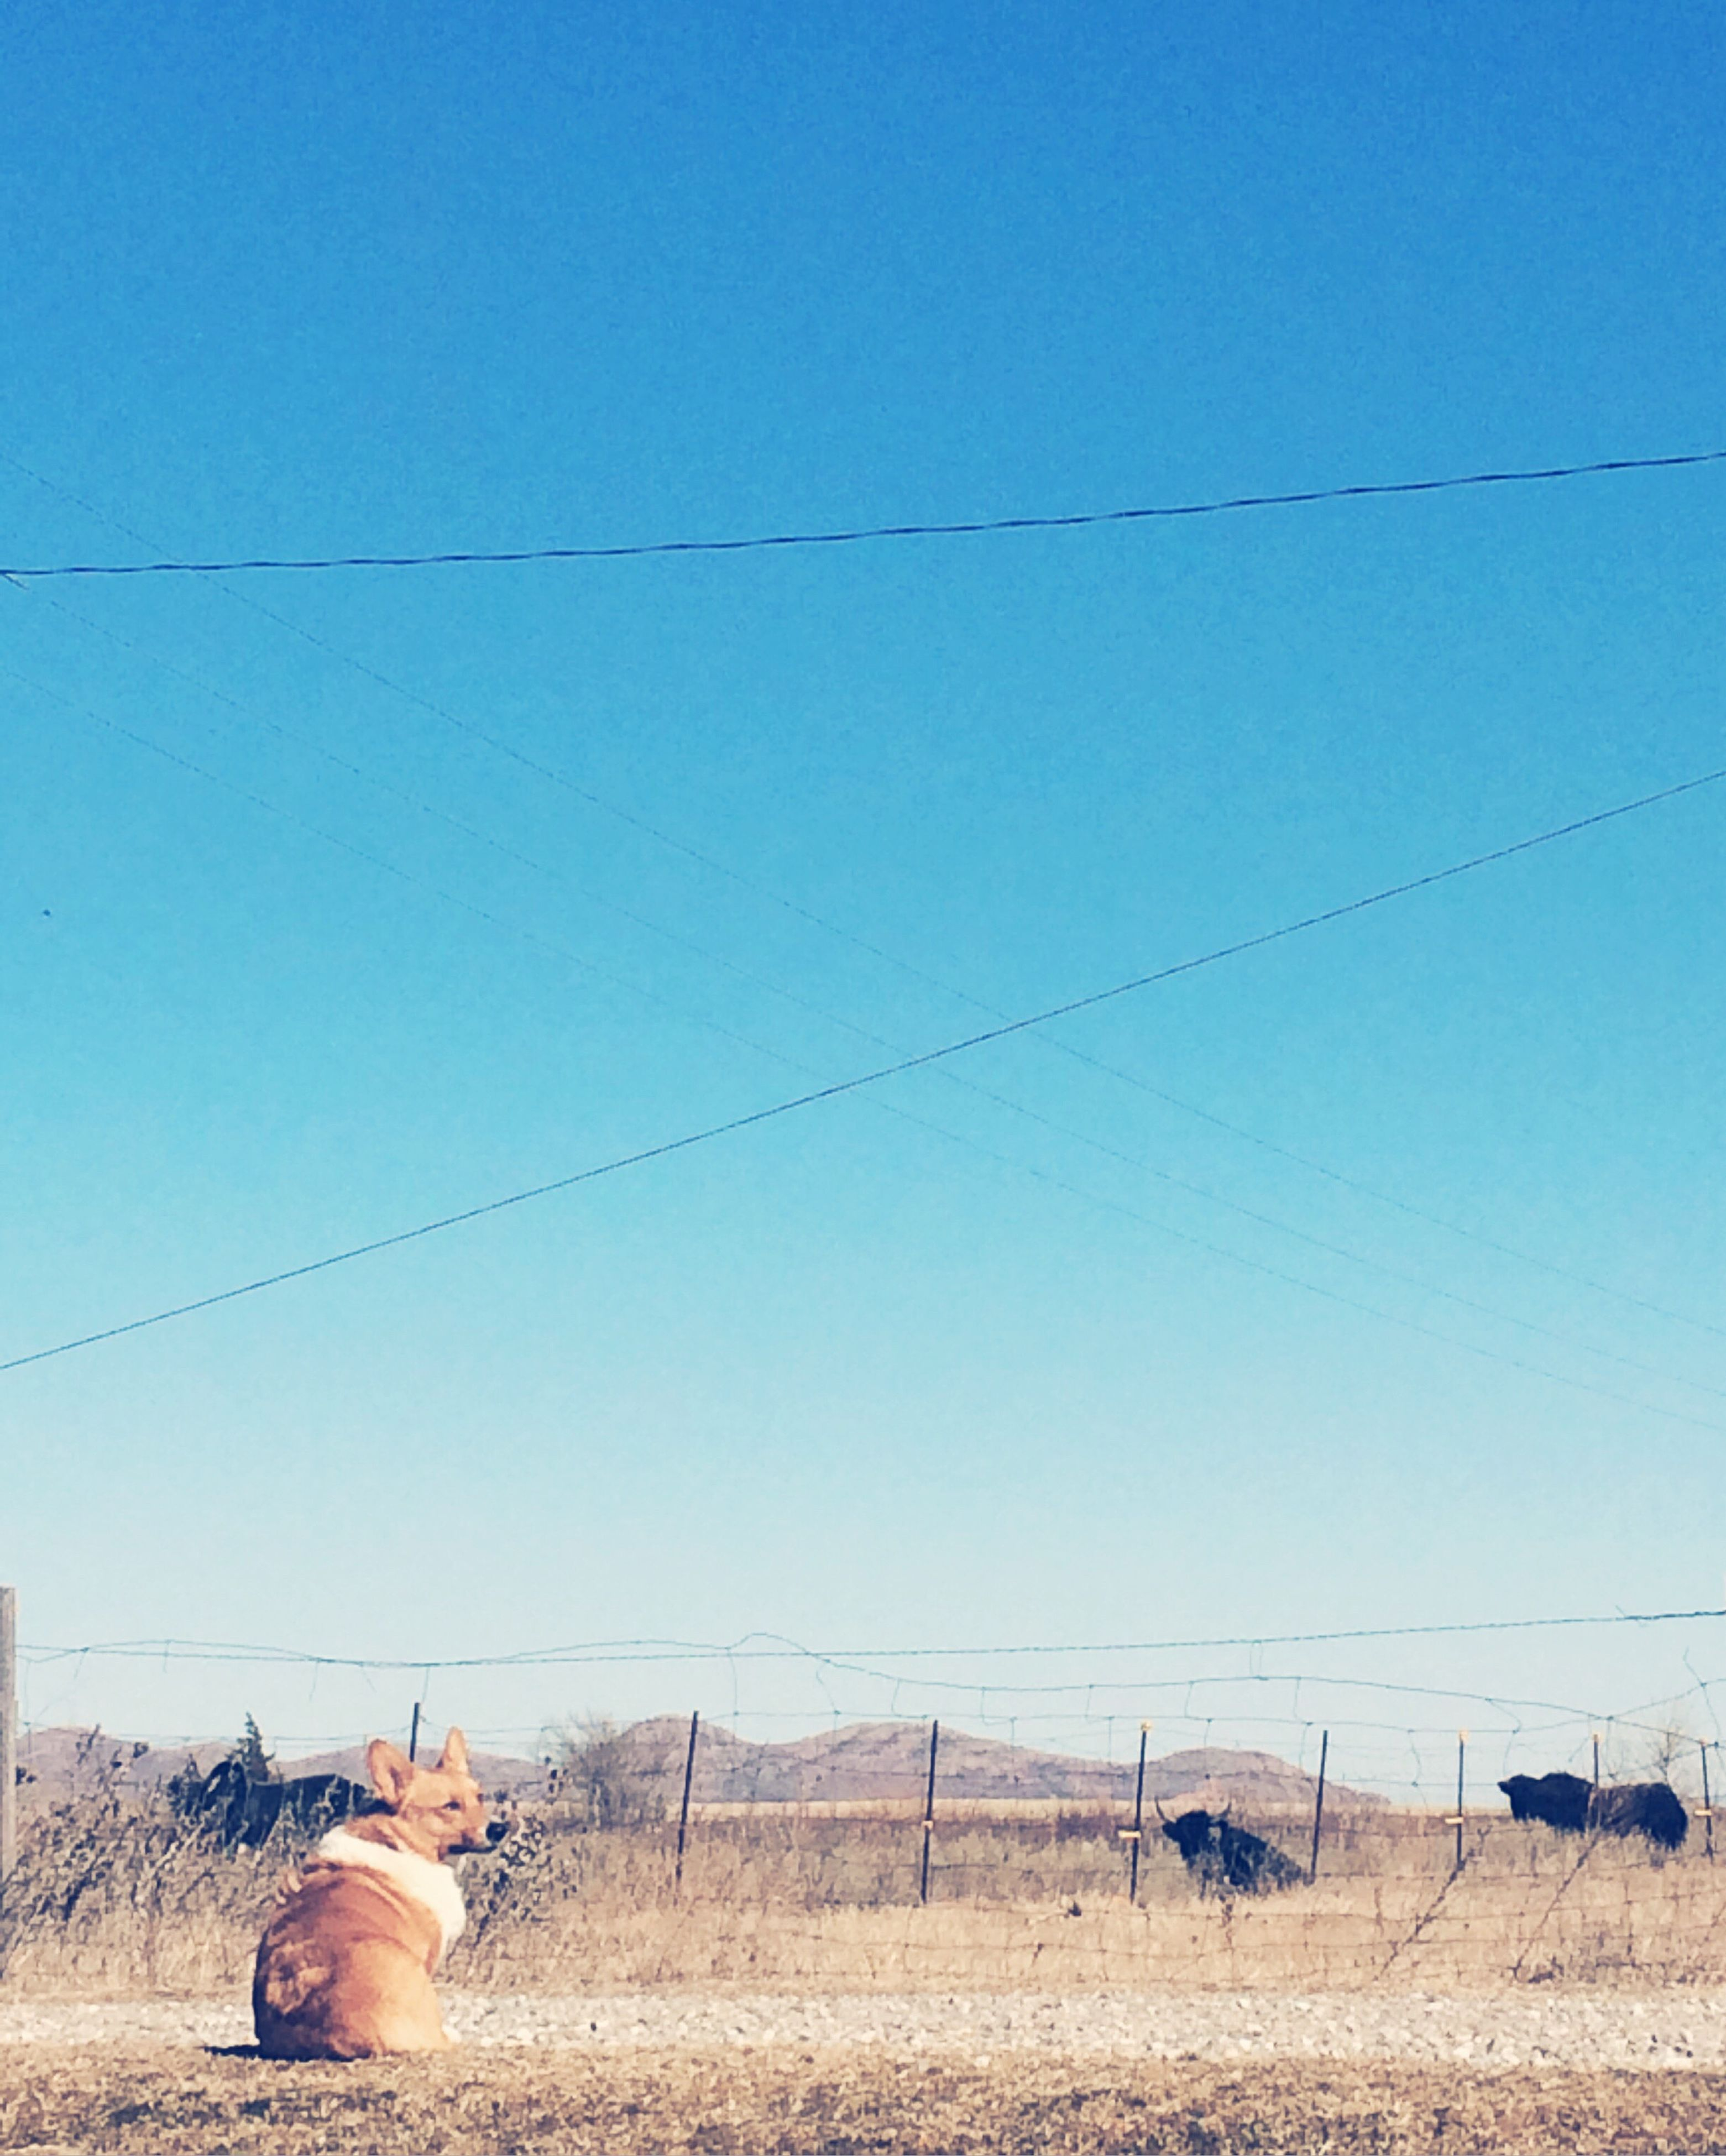 field, clear sky, landscape, blue, rural scene, power line, electricity pylon, agriculture, sky, farm, cable, animal themes, fuel and power generation, electricity, nature, power supply, grass, day, livestock, copy space